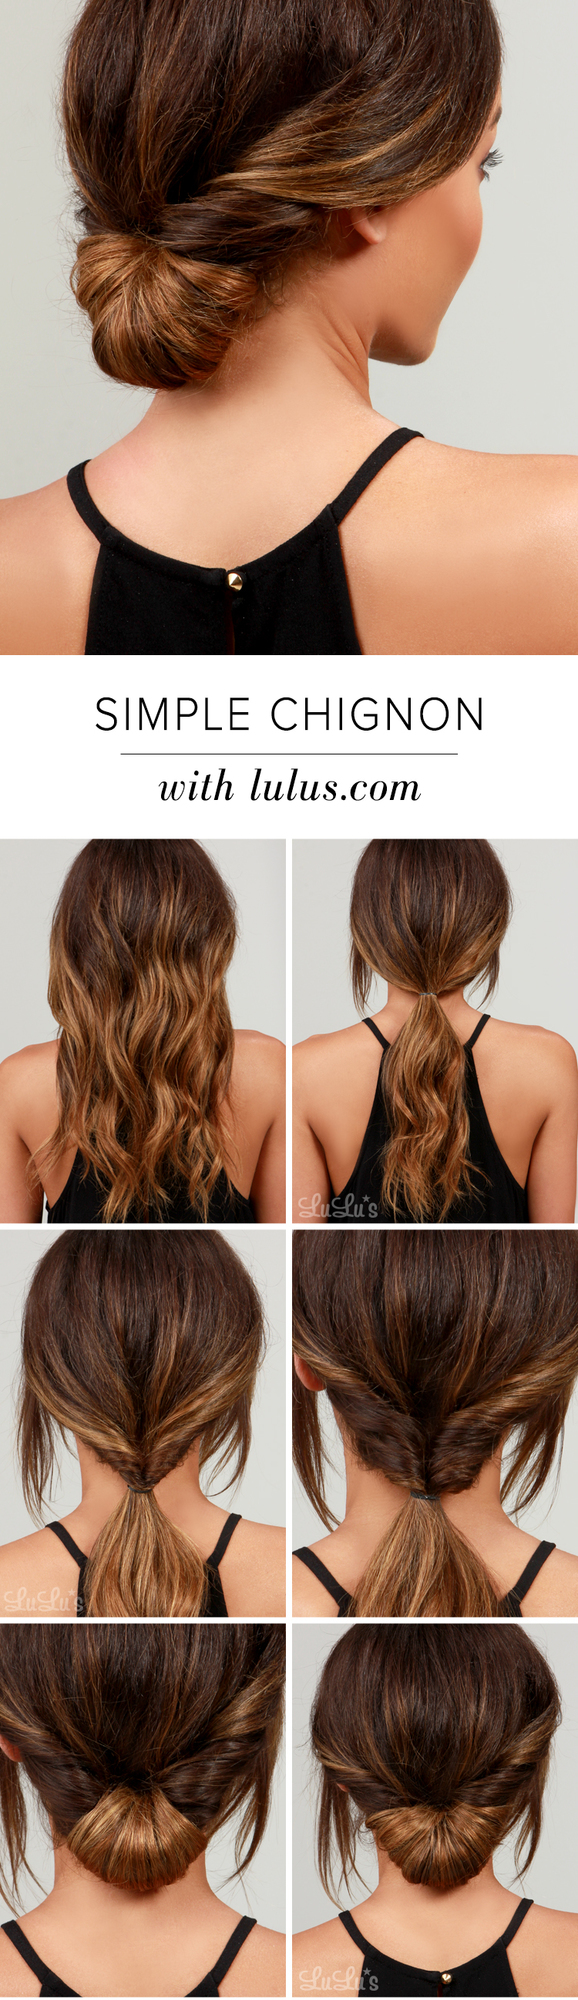 Thumb 072015 simplechignon